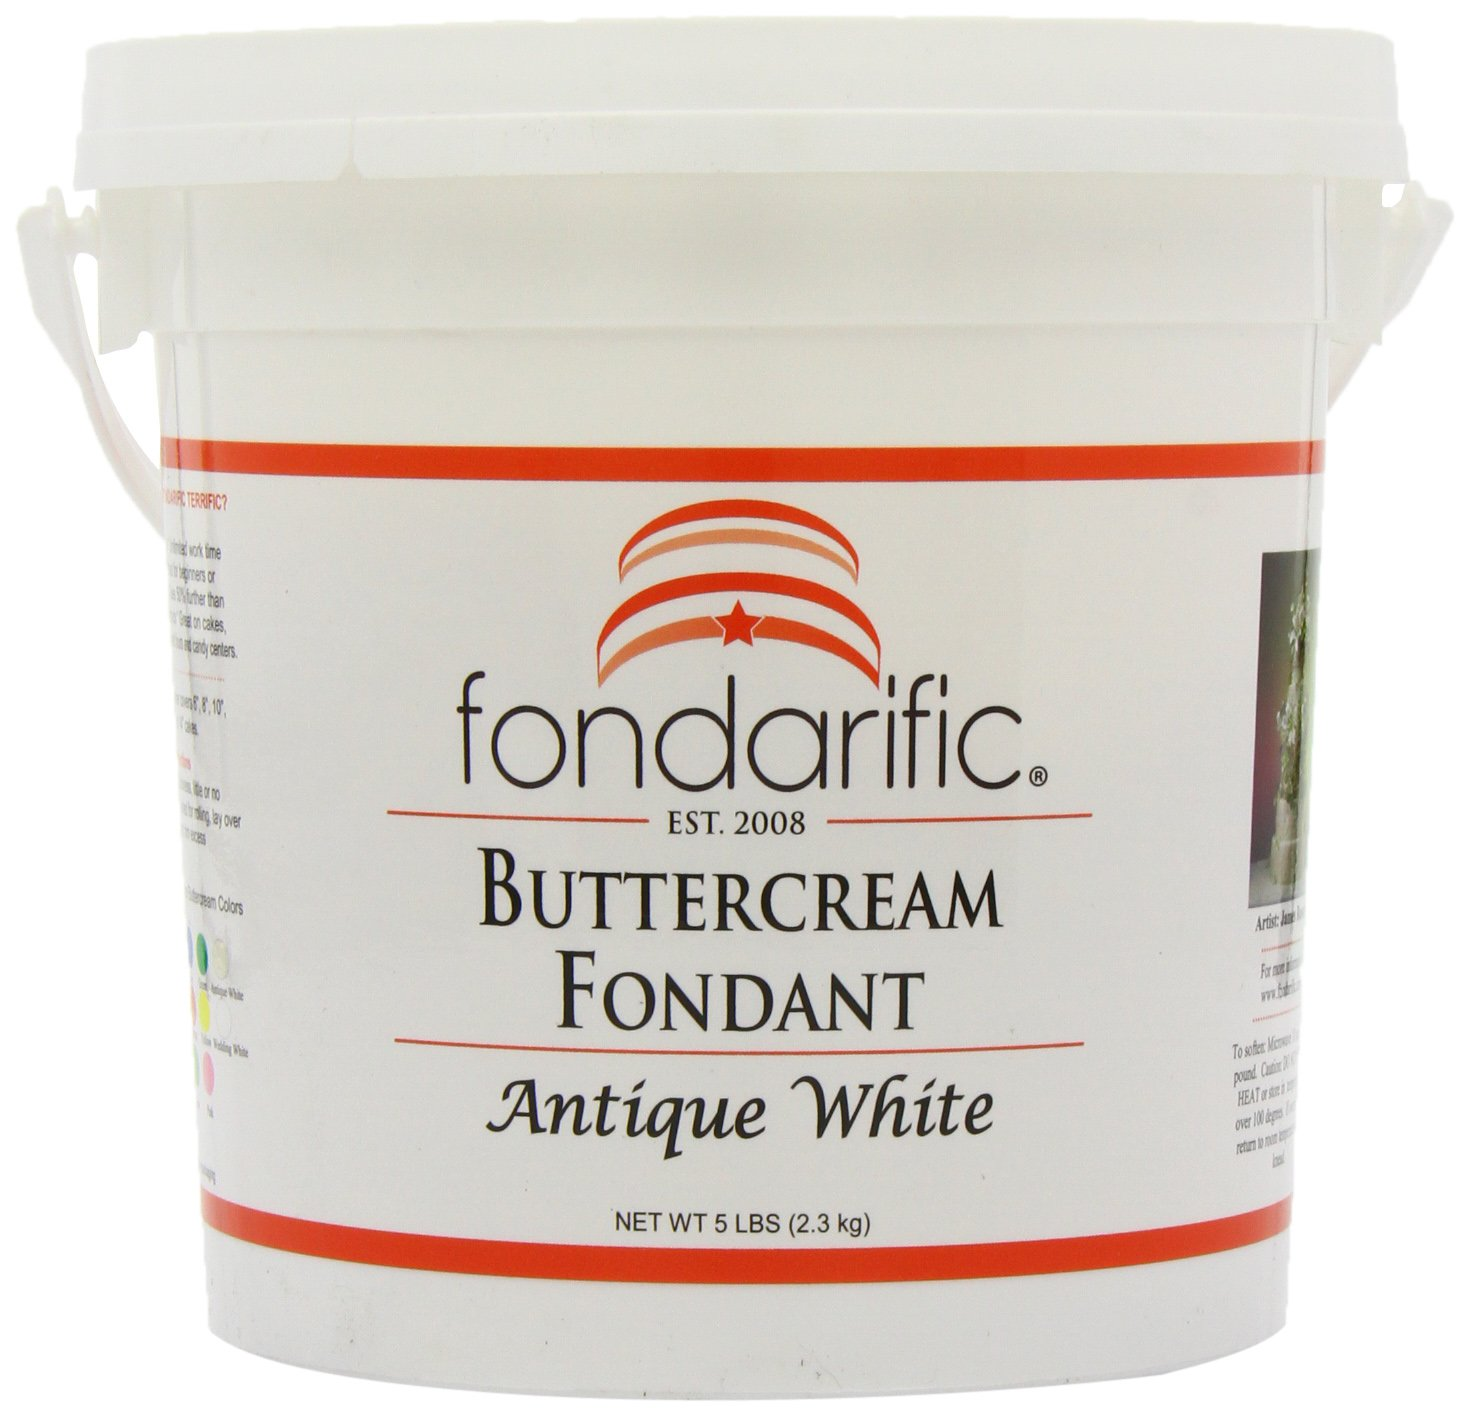 Fondarific Buttercream Antique White Fondant, 5-Pounds